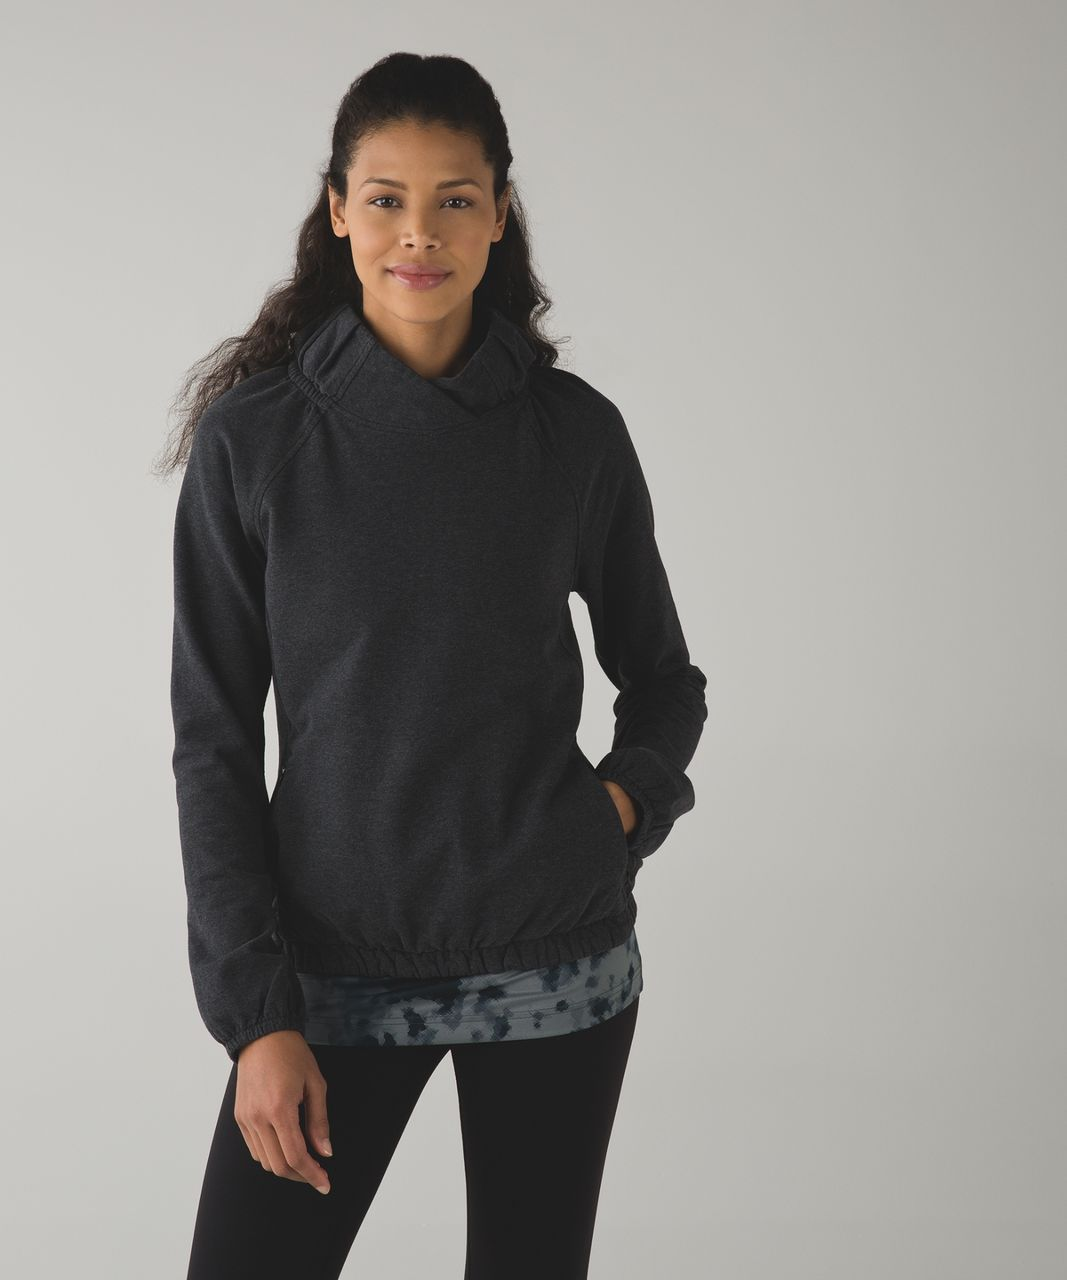 Lululemon After All Pullover - Heathered Black